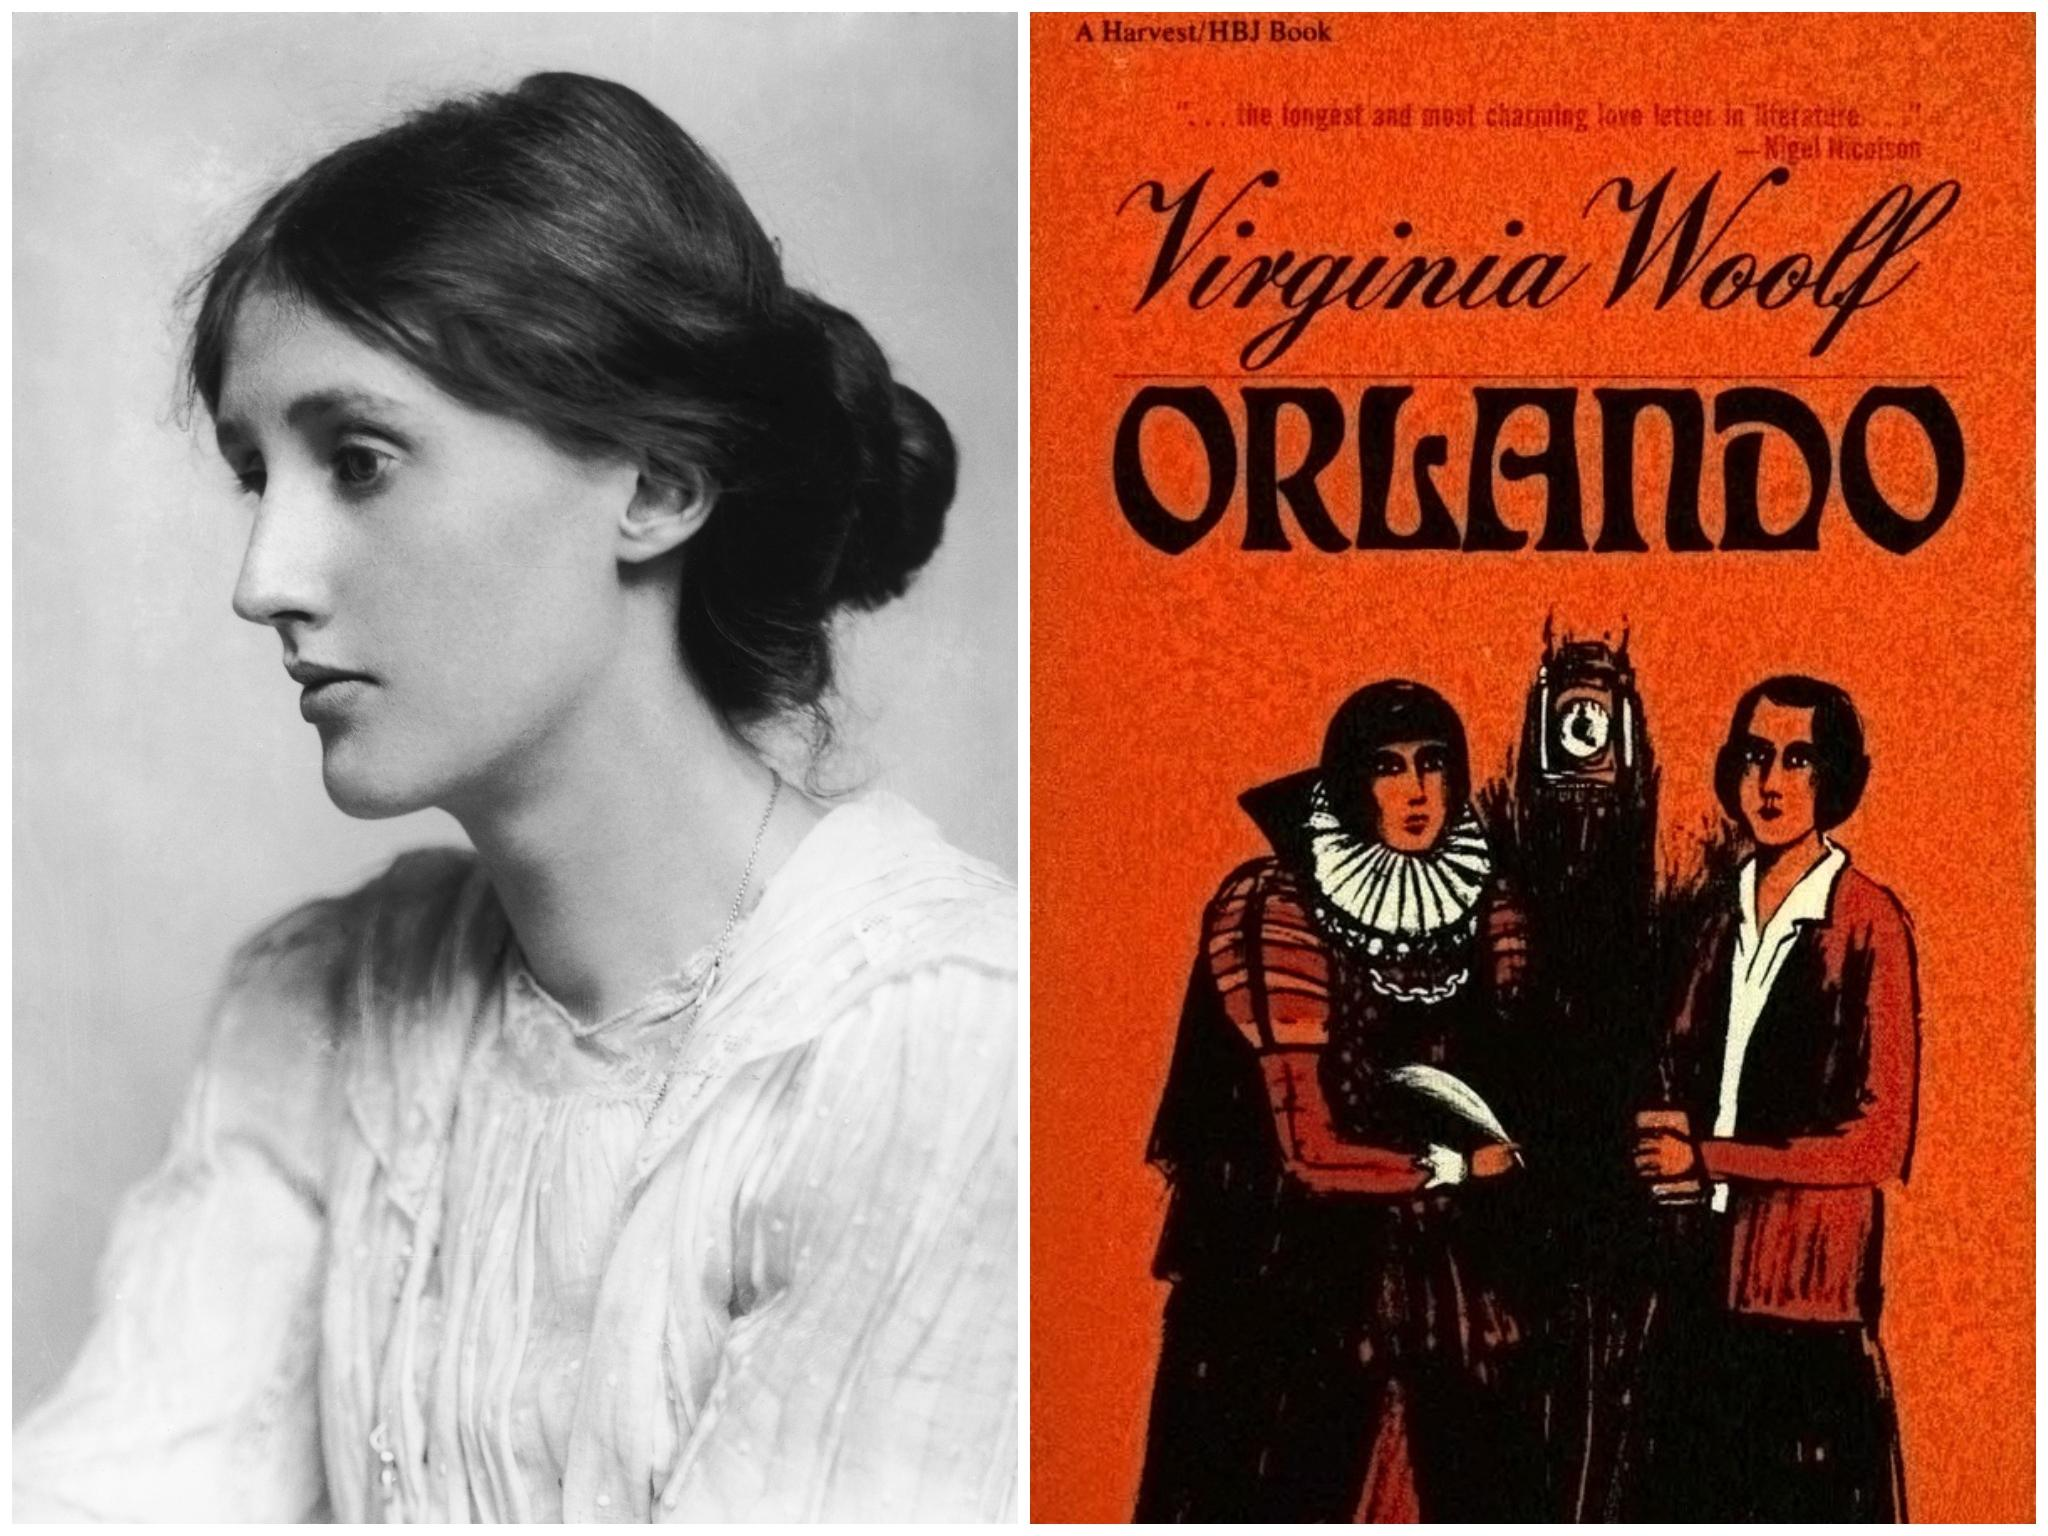 Virginia Woolf's lesbian love letter Orlando joyfully deconstructs the gender binary